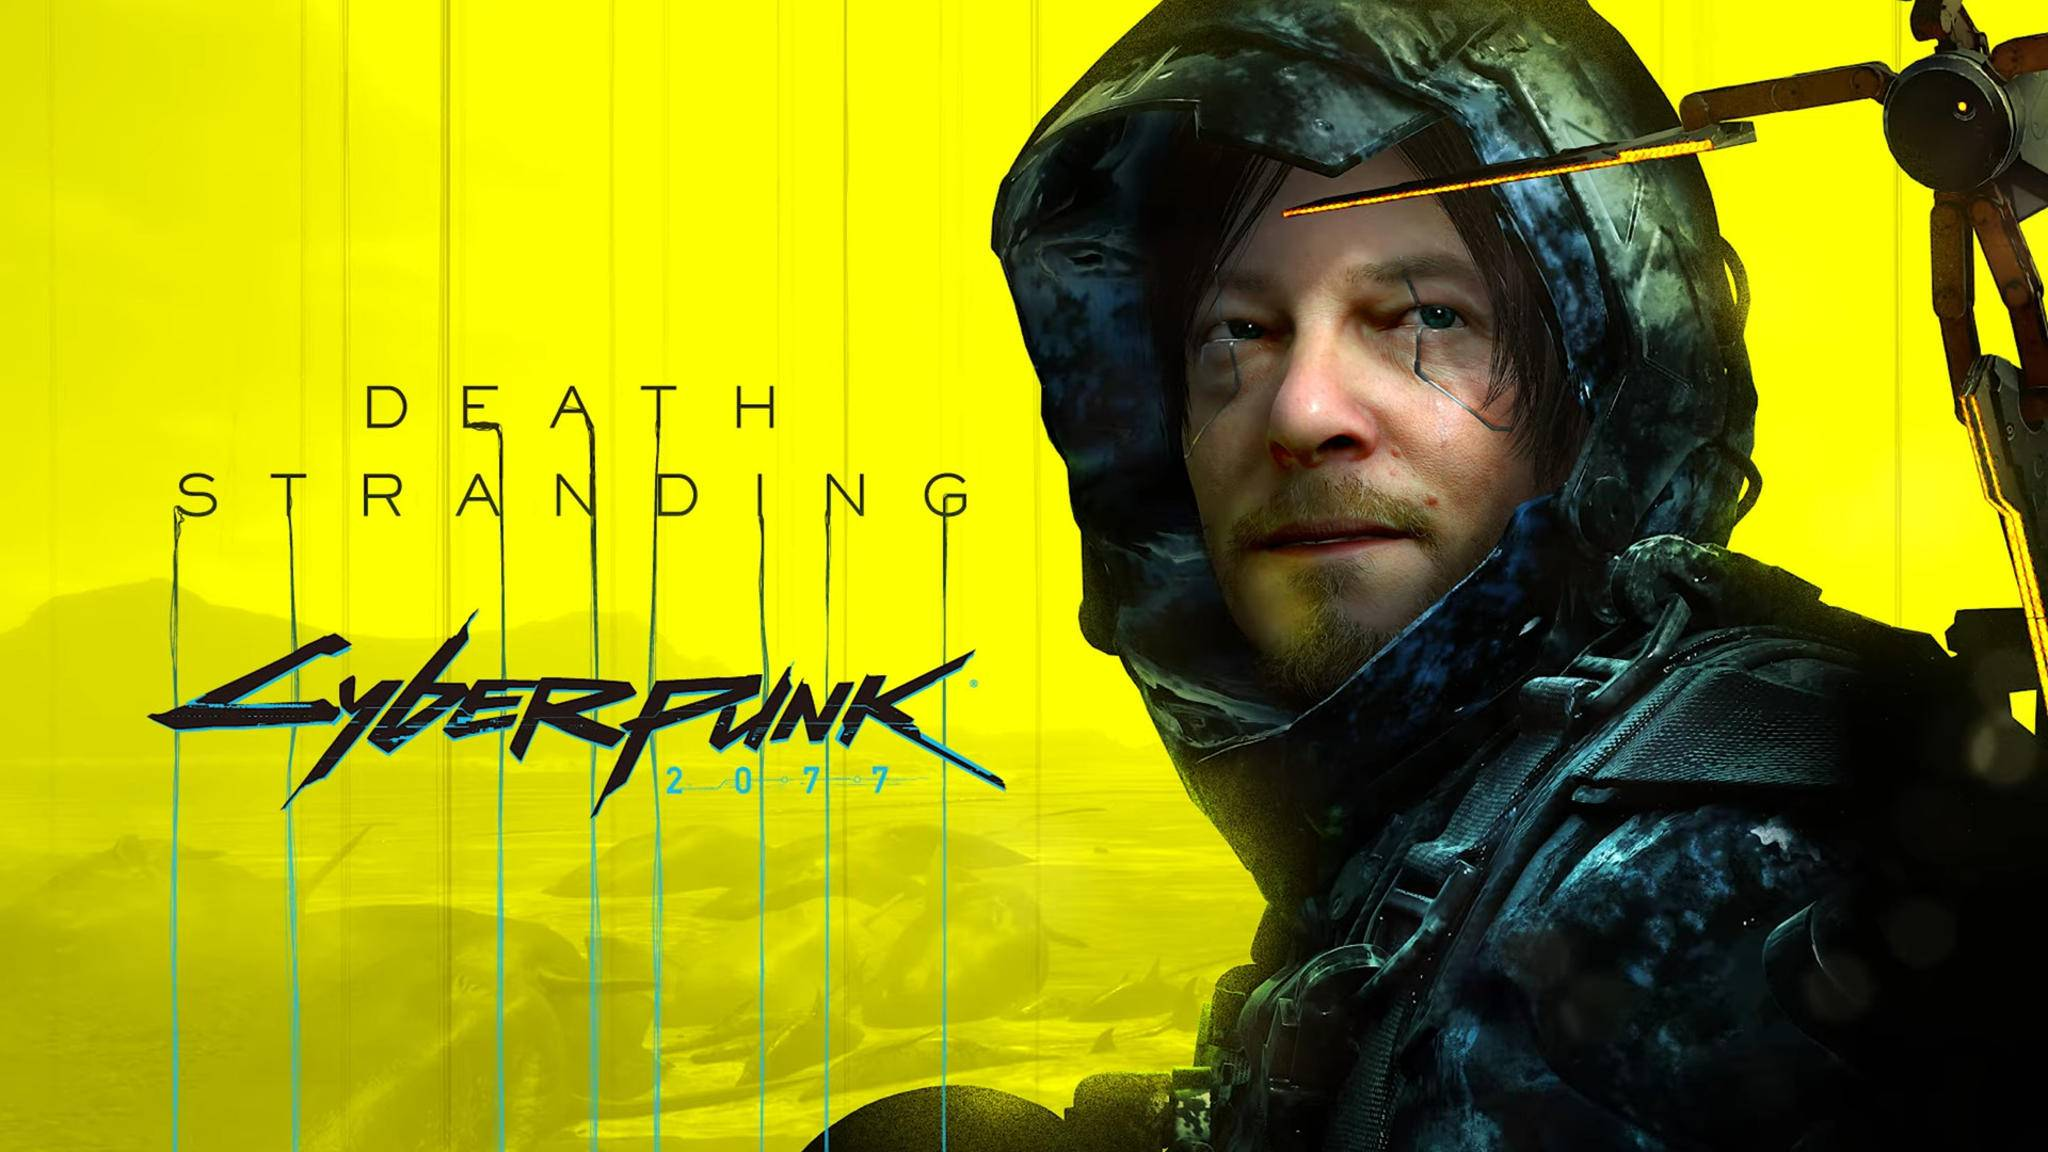 Death Stranding gets a Cyberpunk 2077 update with six new missions and items